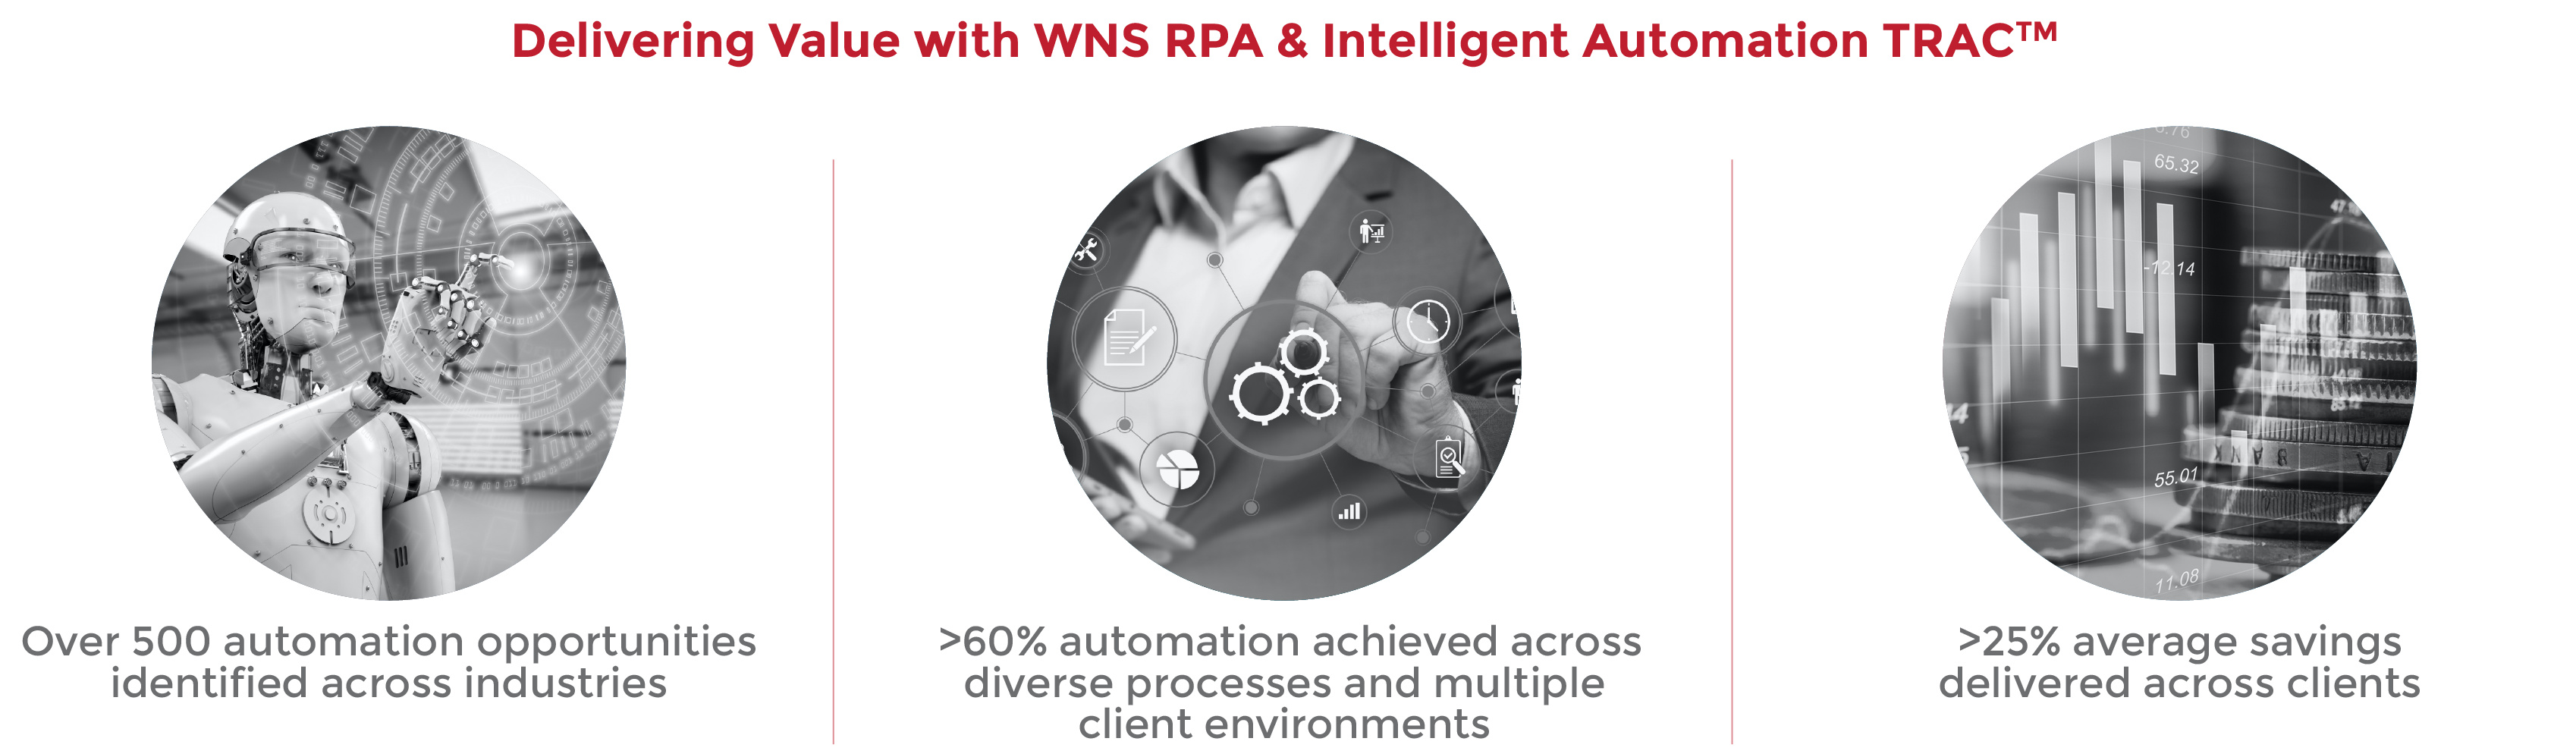 Delivering Value with WNS RPA & Intelligent Automation TRAC™